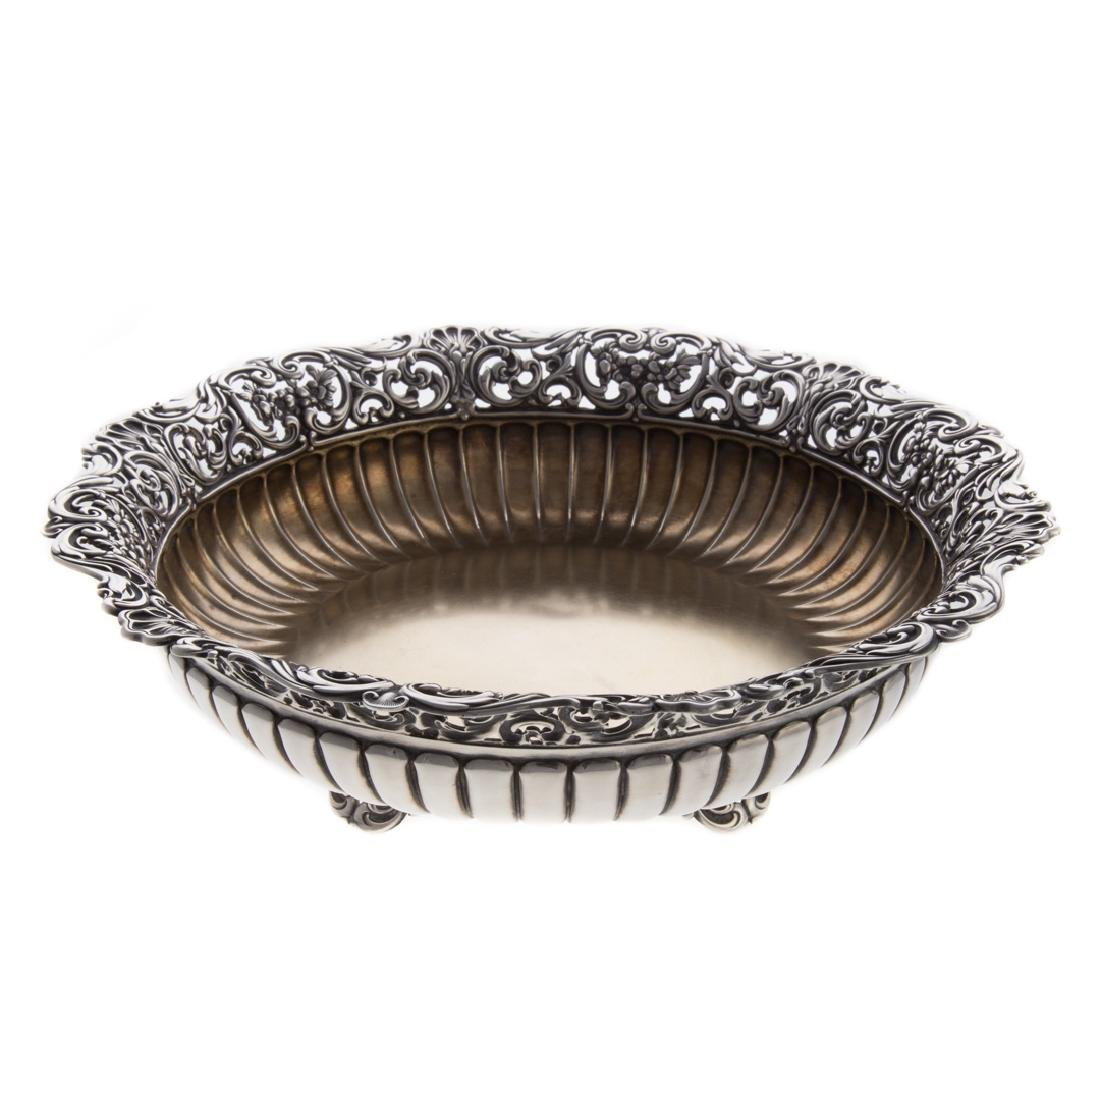 Art Nouveau style sterling footed center bowl